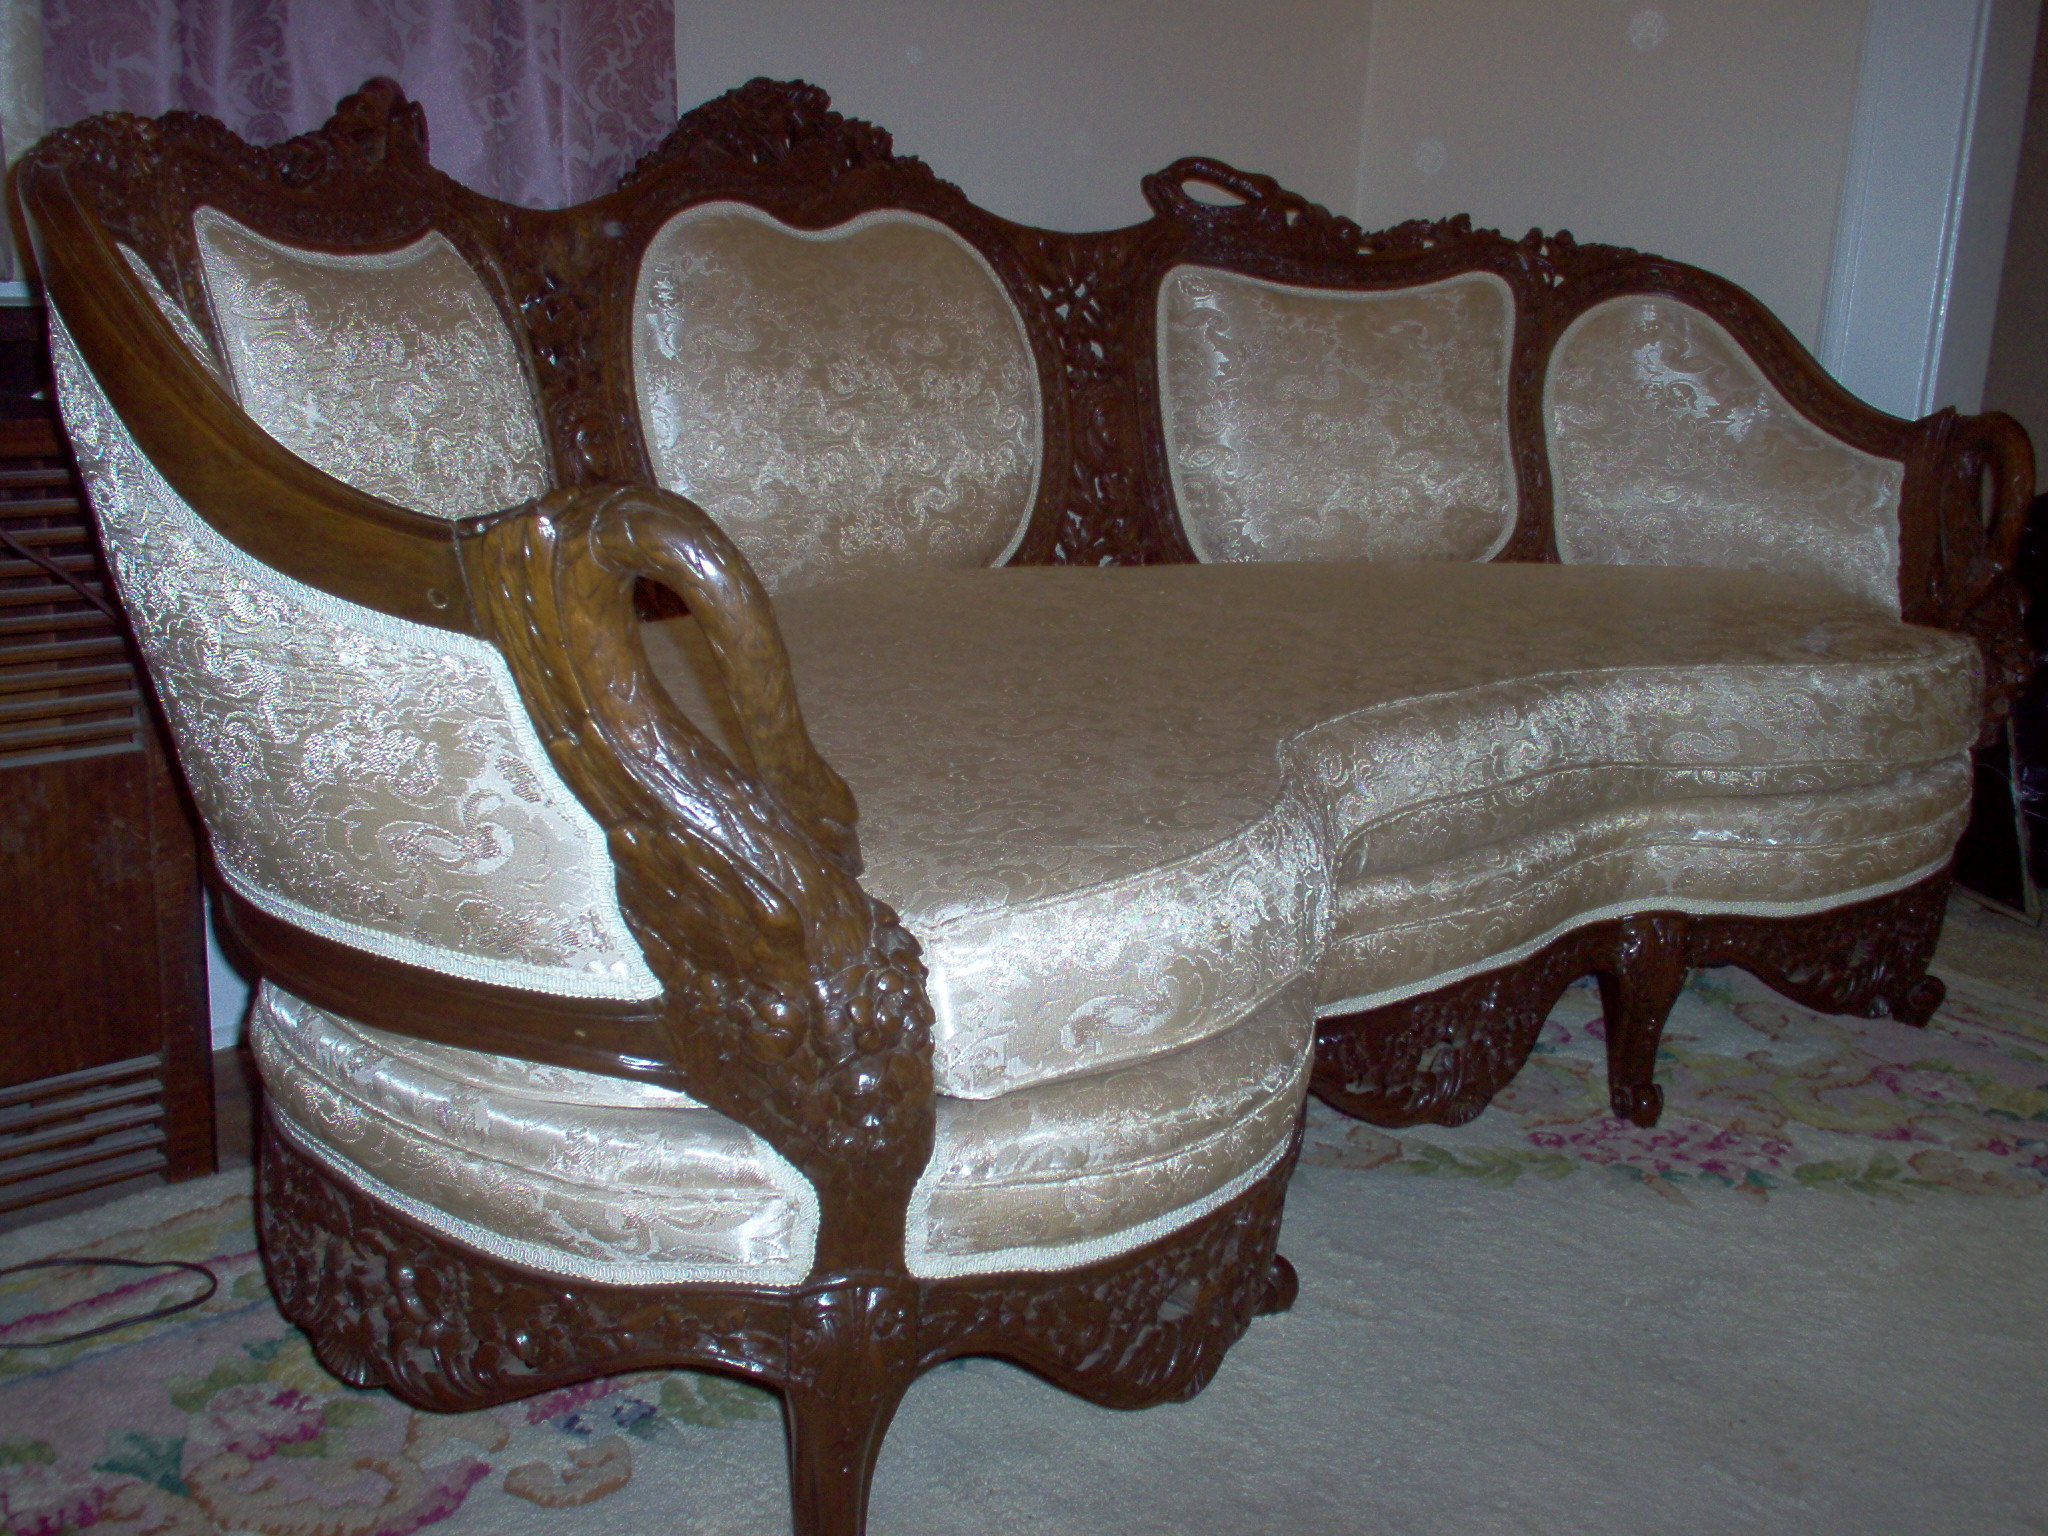 Classic, High Quality Parlor Set, Possibly Mahogany, Features Carved Swans  With White Brocade Fabric. Possibly Made By Herter Brothers Of Philadelphia.